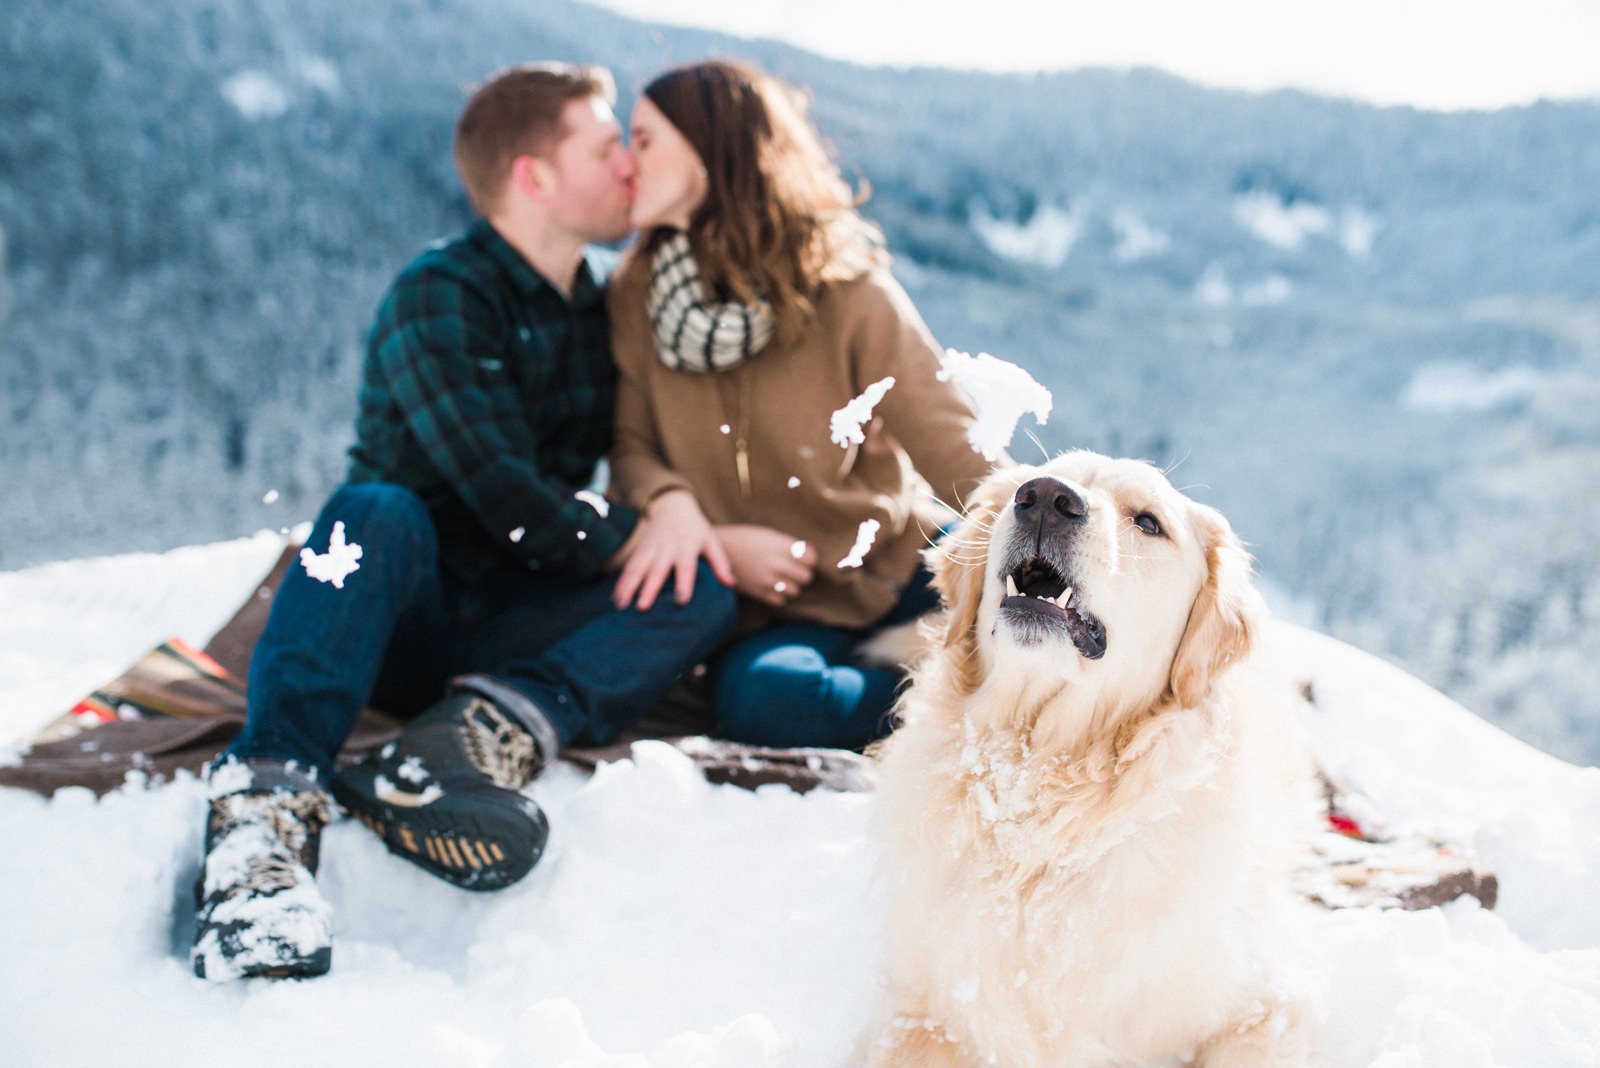 144-snowy-mt-rainier-engagement-photo-with-golden-retriever.jpg